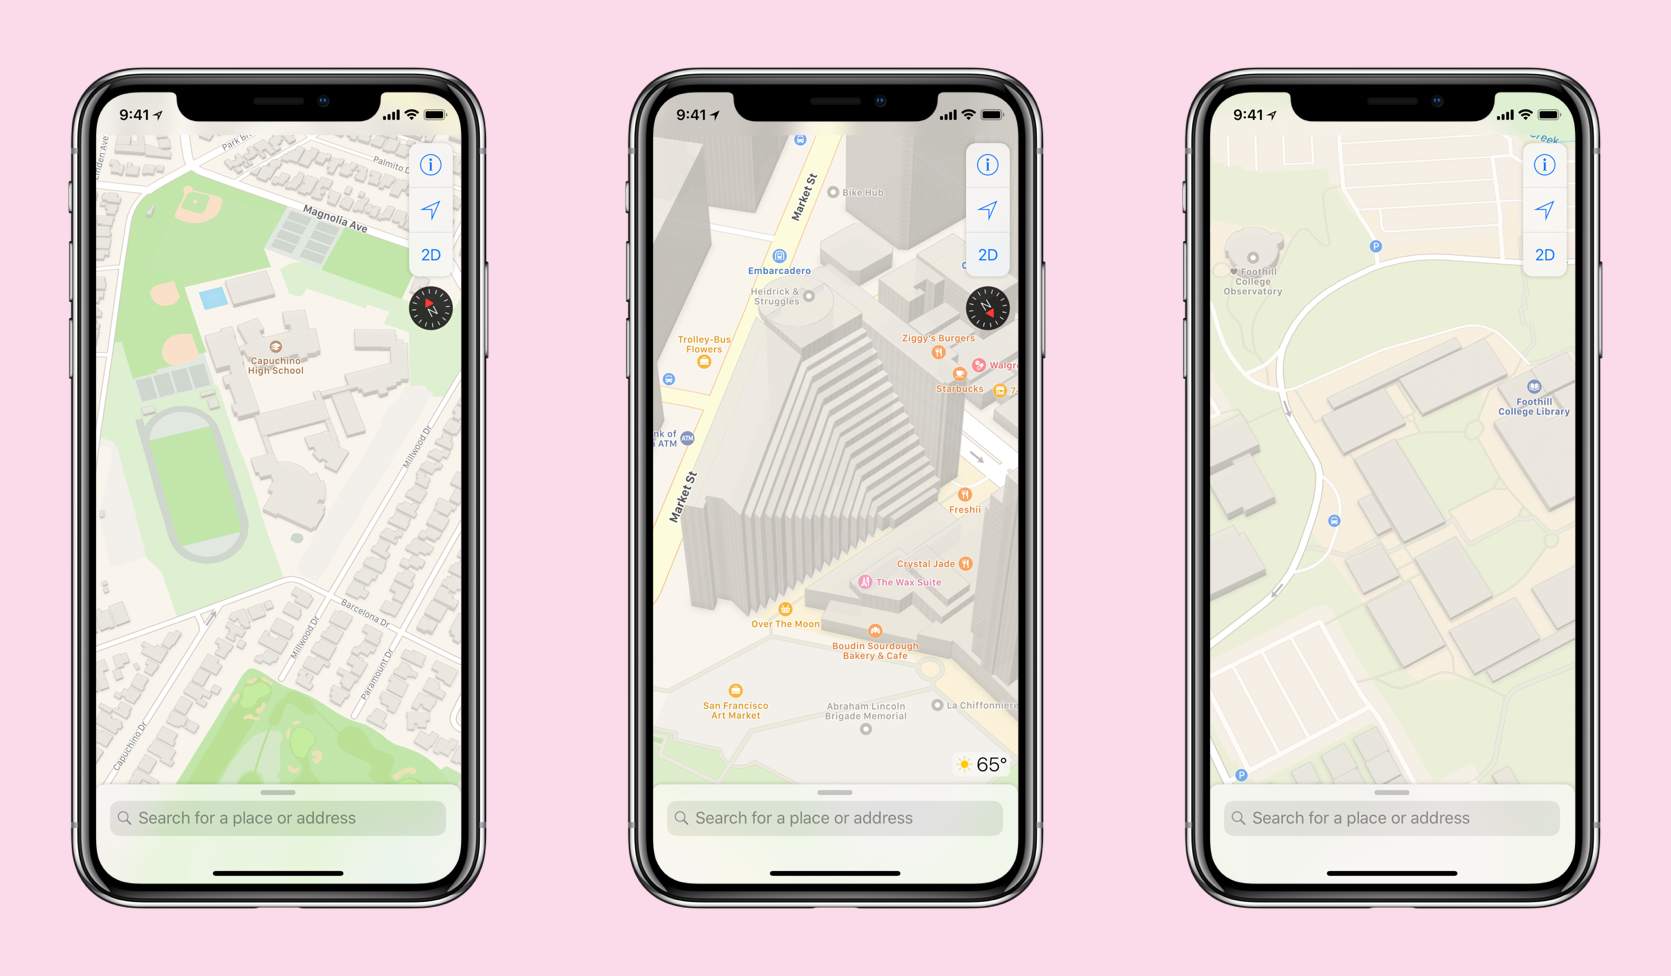 Apple's effort to fix Maps is over four years in the making